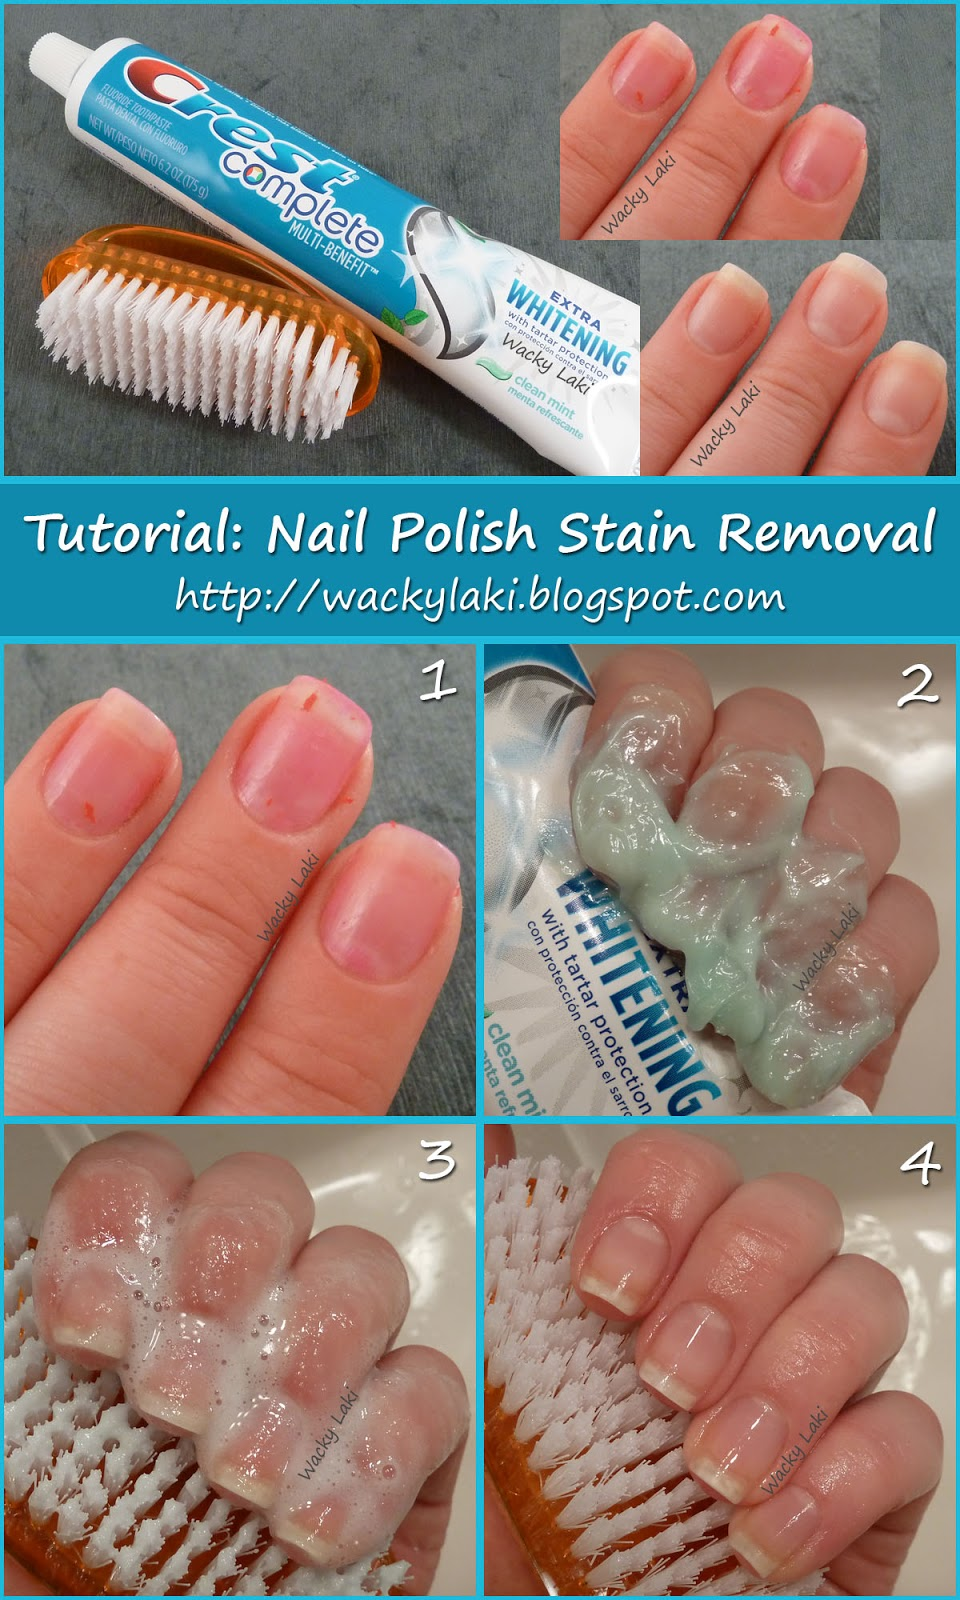 20 Brilliantly Creative Nail Art Hacks That Are Pure